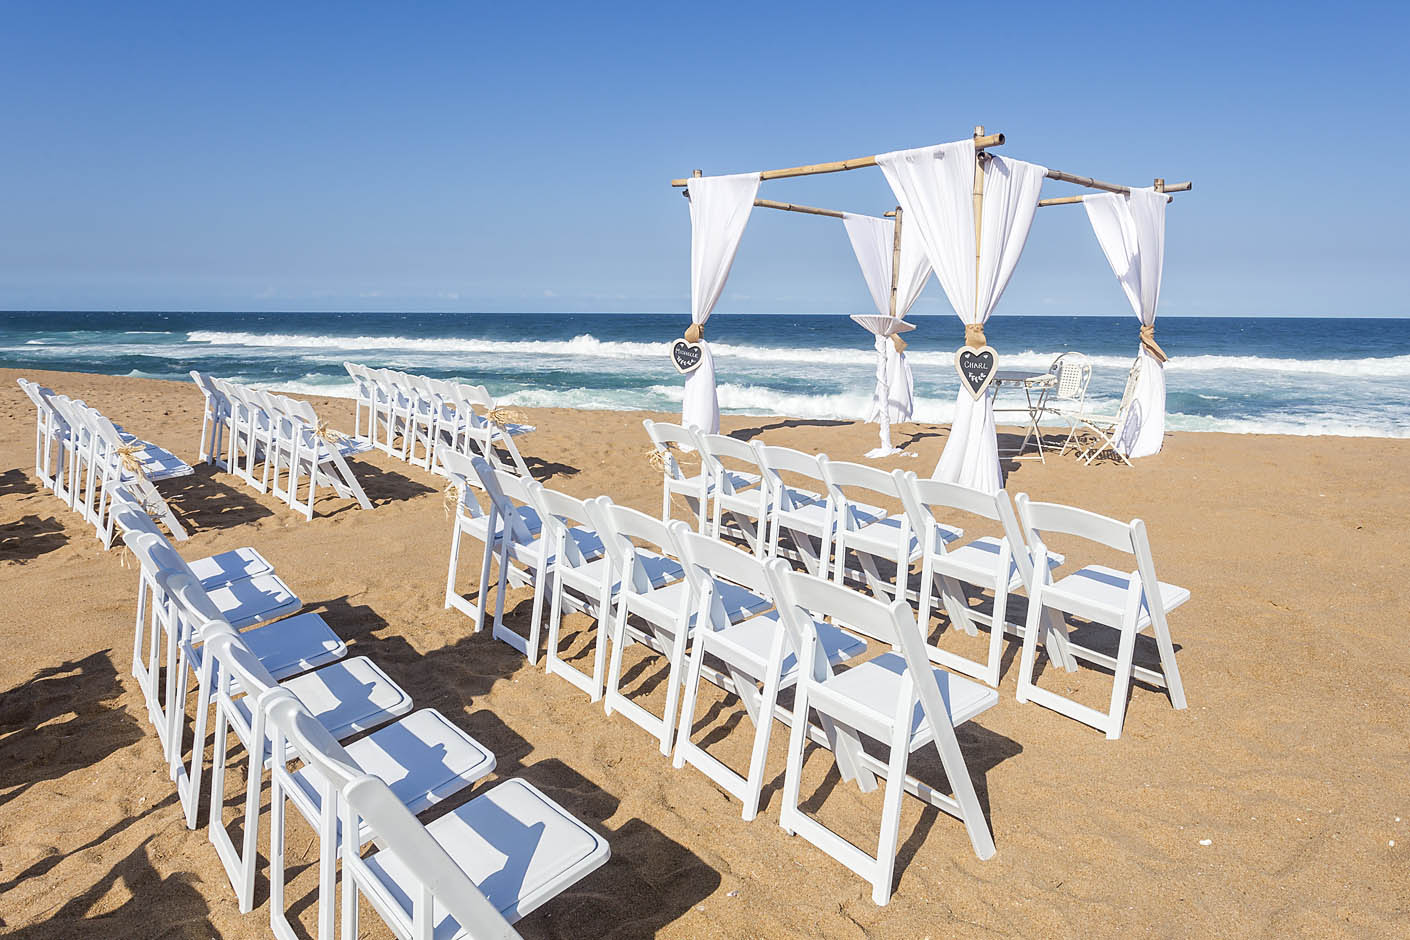 Bellito-have-great-beaches-for-weddings-taken-at-Salt-rock-hotel